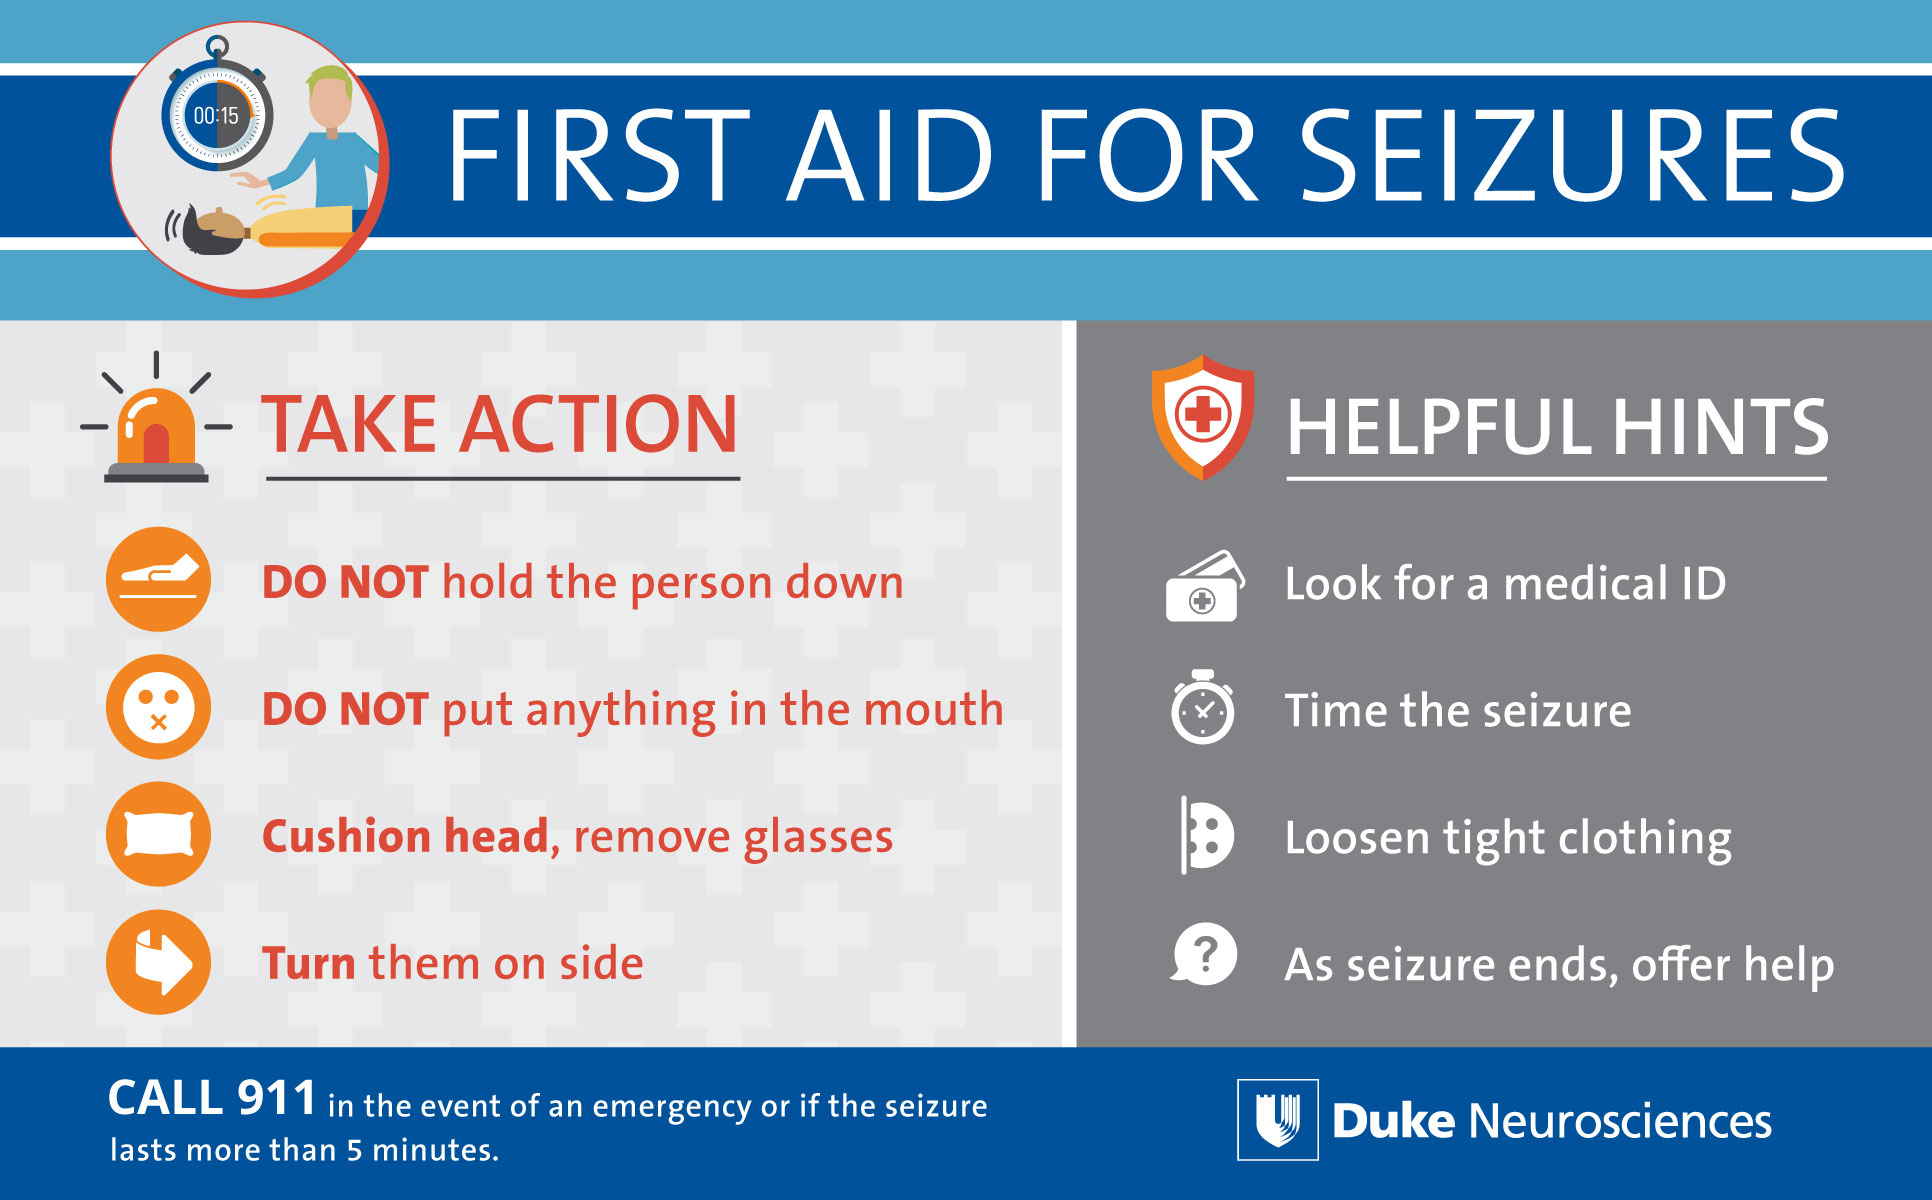 First Aid for Seizures. Take action: DO NOT hold the person down. DO NOT put anything in the mouth. Cushion head, remove glasses. Turn them on side. Helpful hints include: Look for a medical ID. Time the seizure. Loosen tight clothing. As seizure ends, offer help. Call 911 in the eent of an emergency or if the seizure lasts more than 5 minutes.